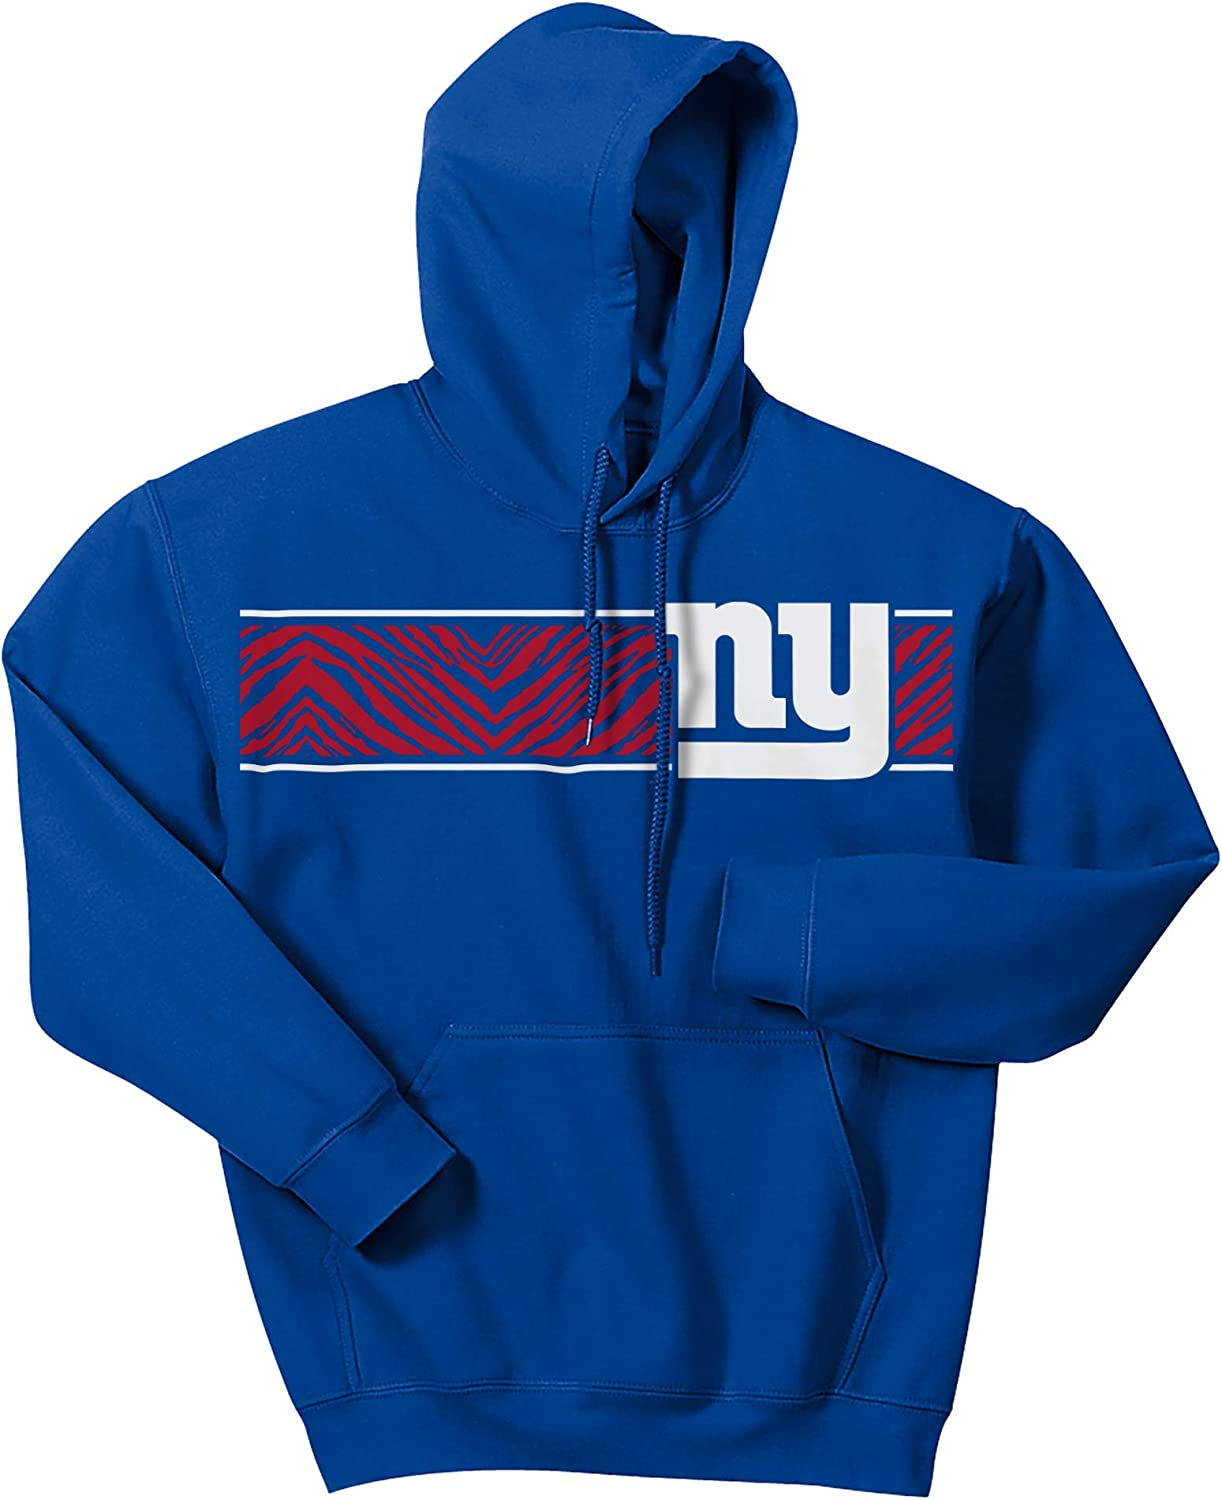 Large Zubaz NFL New York Giants Mens Zebra Logo Hoodie Royal Blue